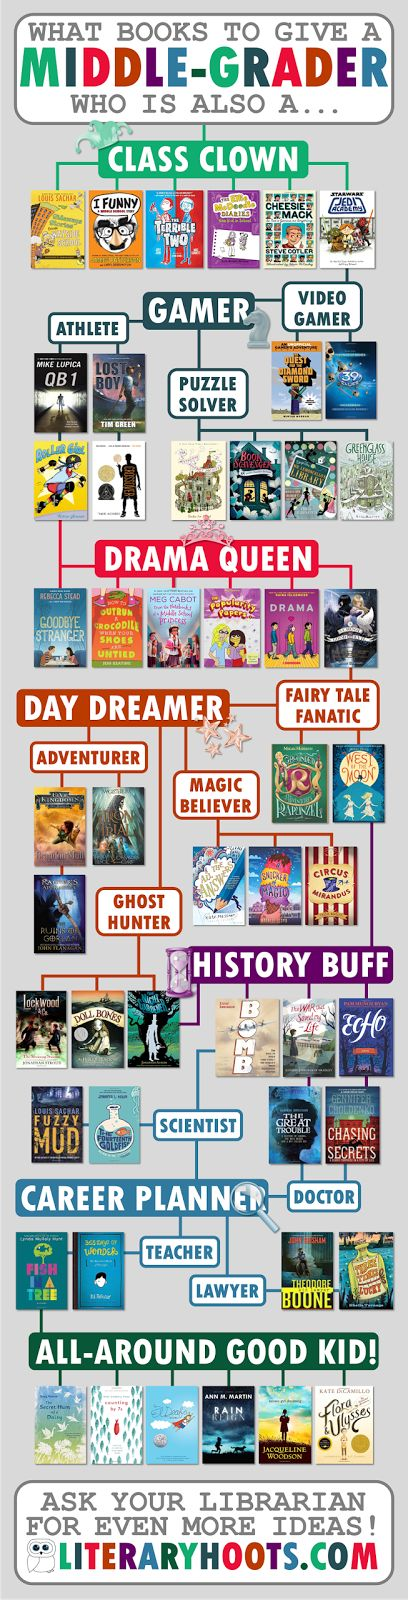 Teach Your Child to Read - Literary Hoots Flowchart: What Books to Give a Middle-Grader - Give Your Child a Head Start, and...Pave the Way for a Bright, Successful Future...